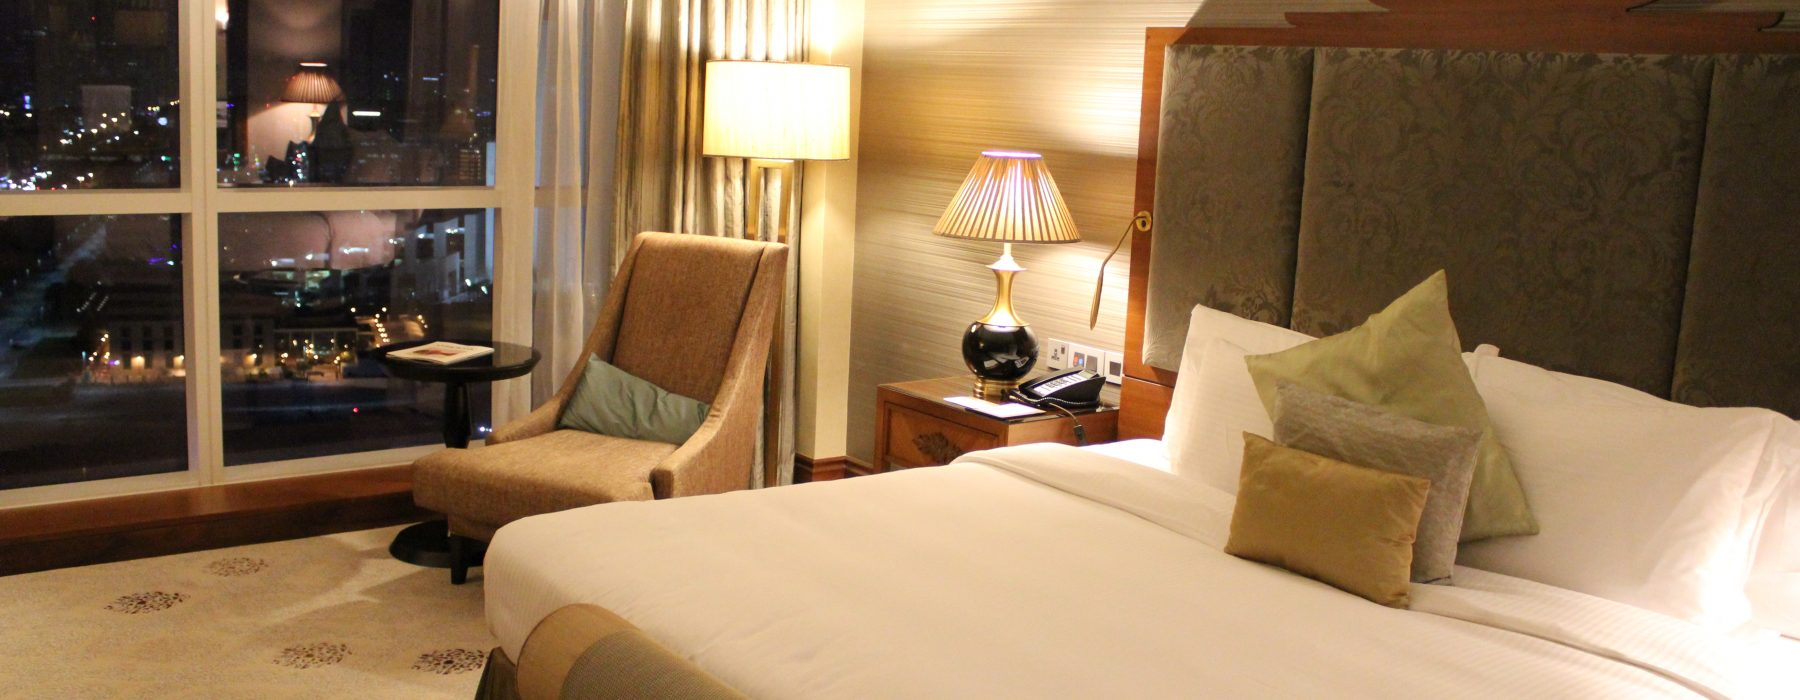 Stay with me at Dusit Thani Abu Dhabi